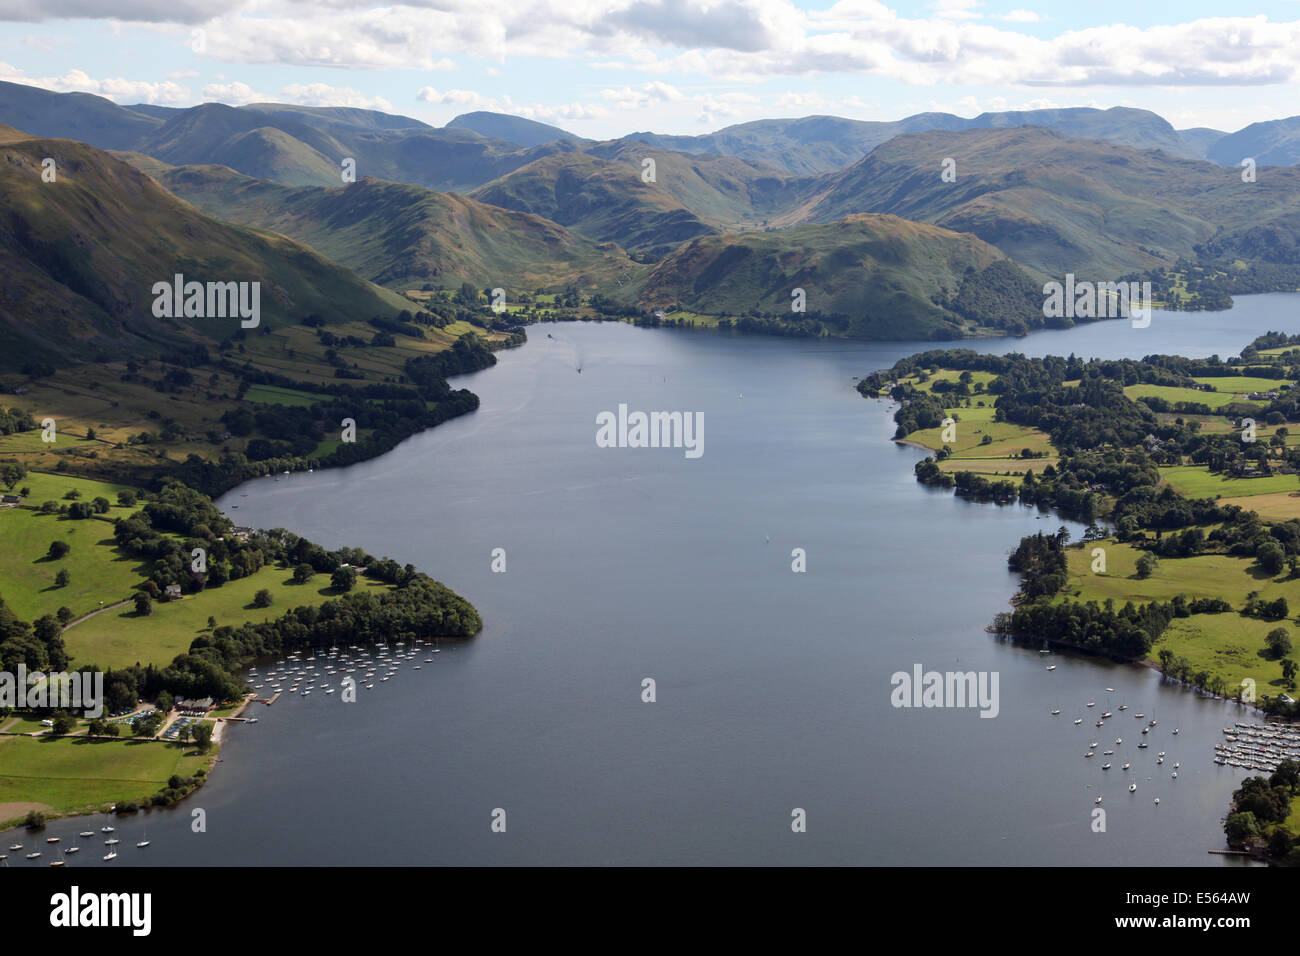 aerial view of Lake Ullswater in the Lake District, UK - Stock Image